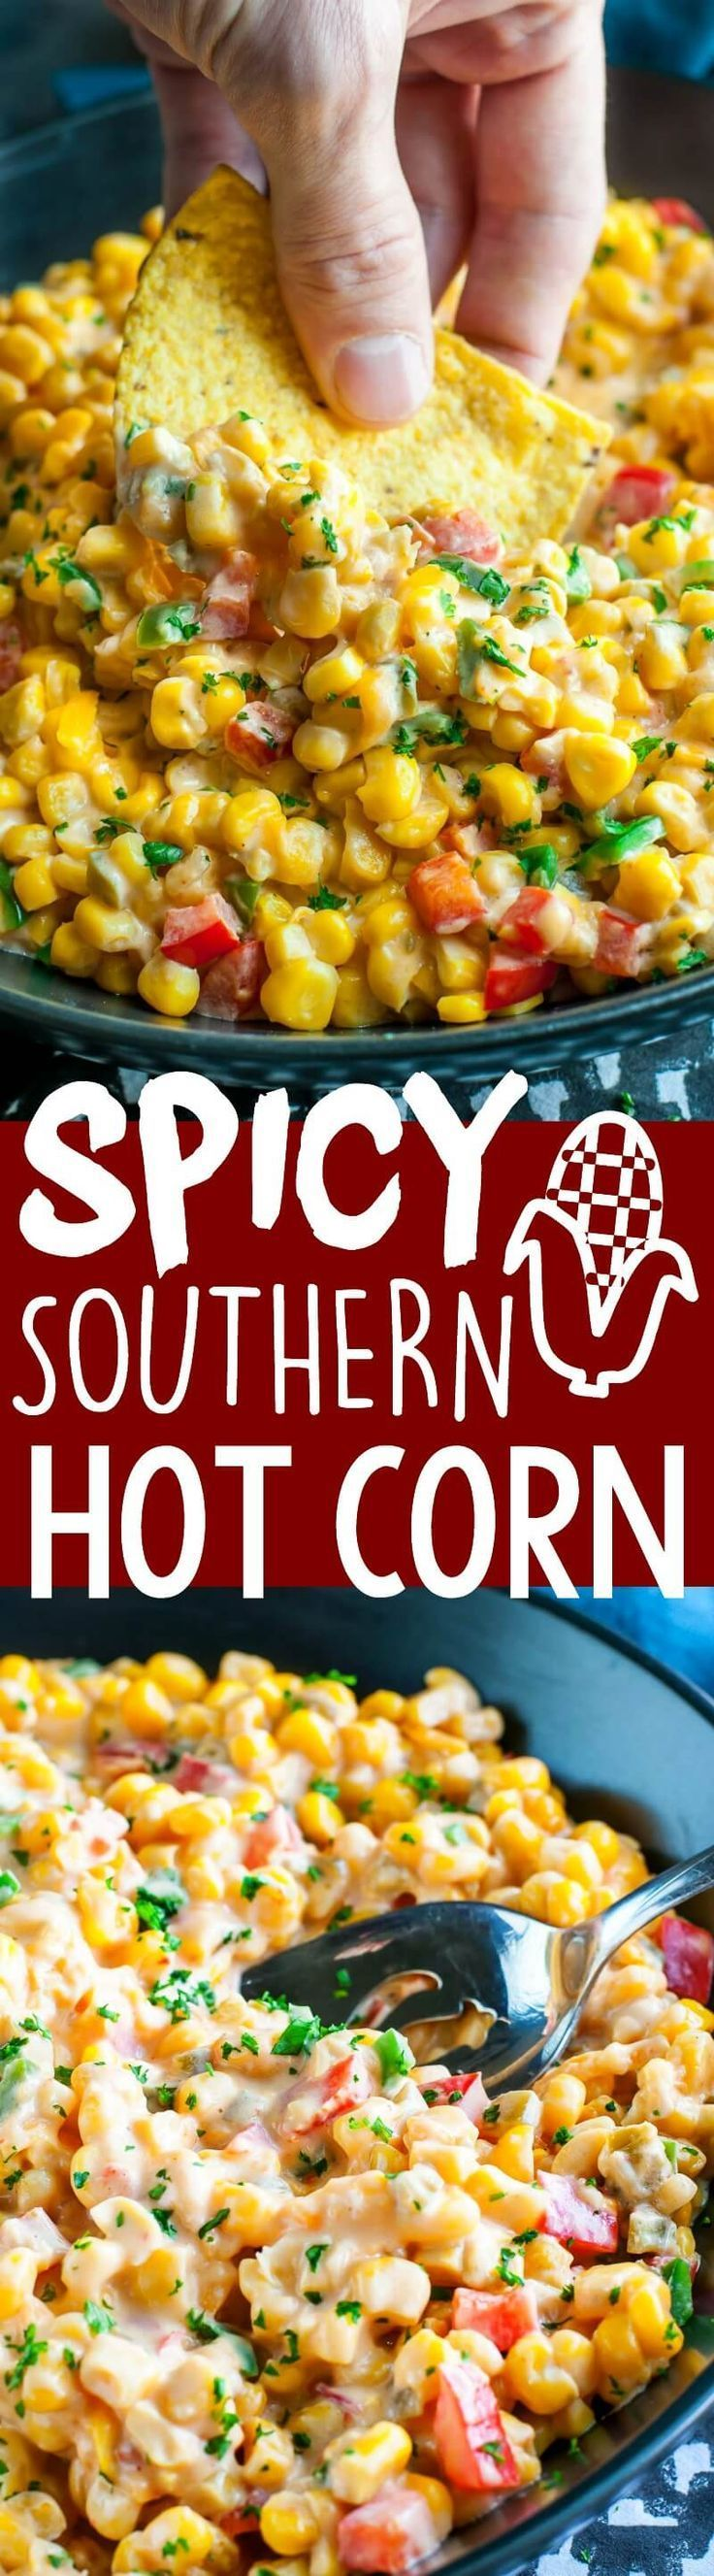 Every Thanksgiving my husband begs for this Spicy Southern Hot Corn! This sassy Southern-style recipe has been part of our holiday meal tradition for years and doubles as a side dish AND a dip!